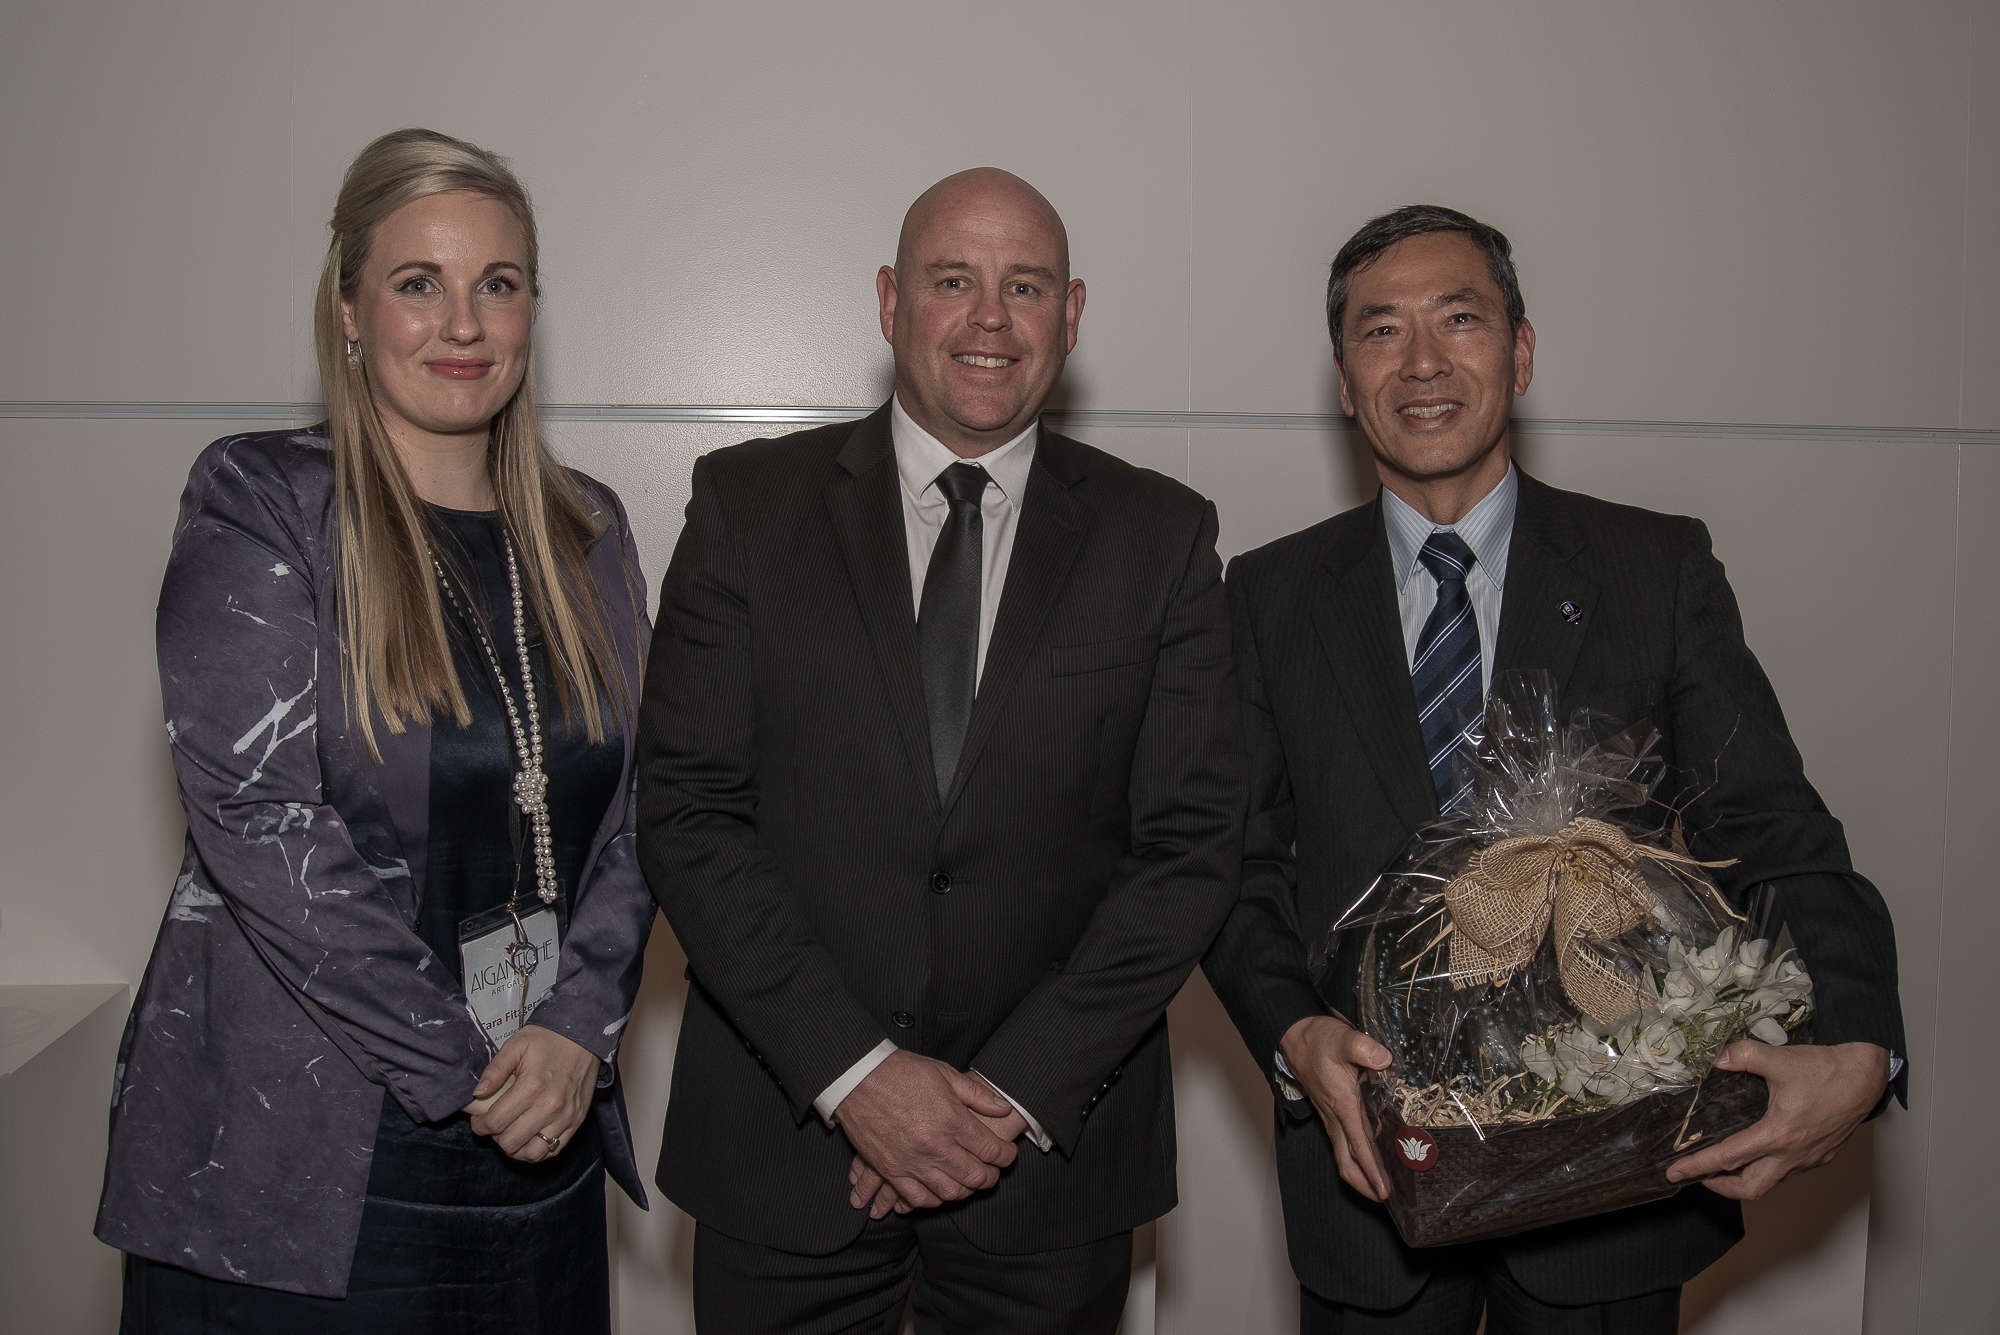 Art Gallery Manager Cara Fitzgerald, Mayor of Timaru Damon Odey, the Ambassador of Japan His Excellency Toshihisa Takata at the opening of Japanese Pottery: The Rising Generation from Traditional Japanese Kilns exhibition at the Aigantighe Art Gallery Timaru onJuly 1, 2016. All pictures are courtesy Ron Lindsay and Aigantighe Art Gallery.